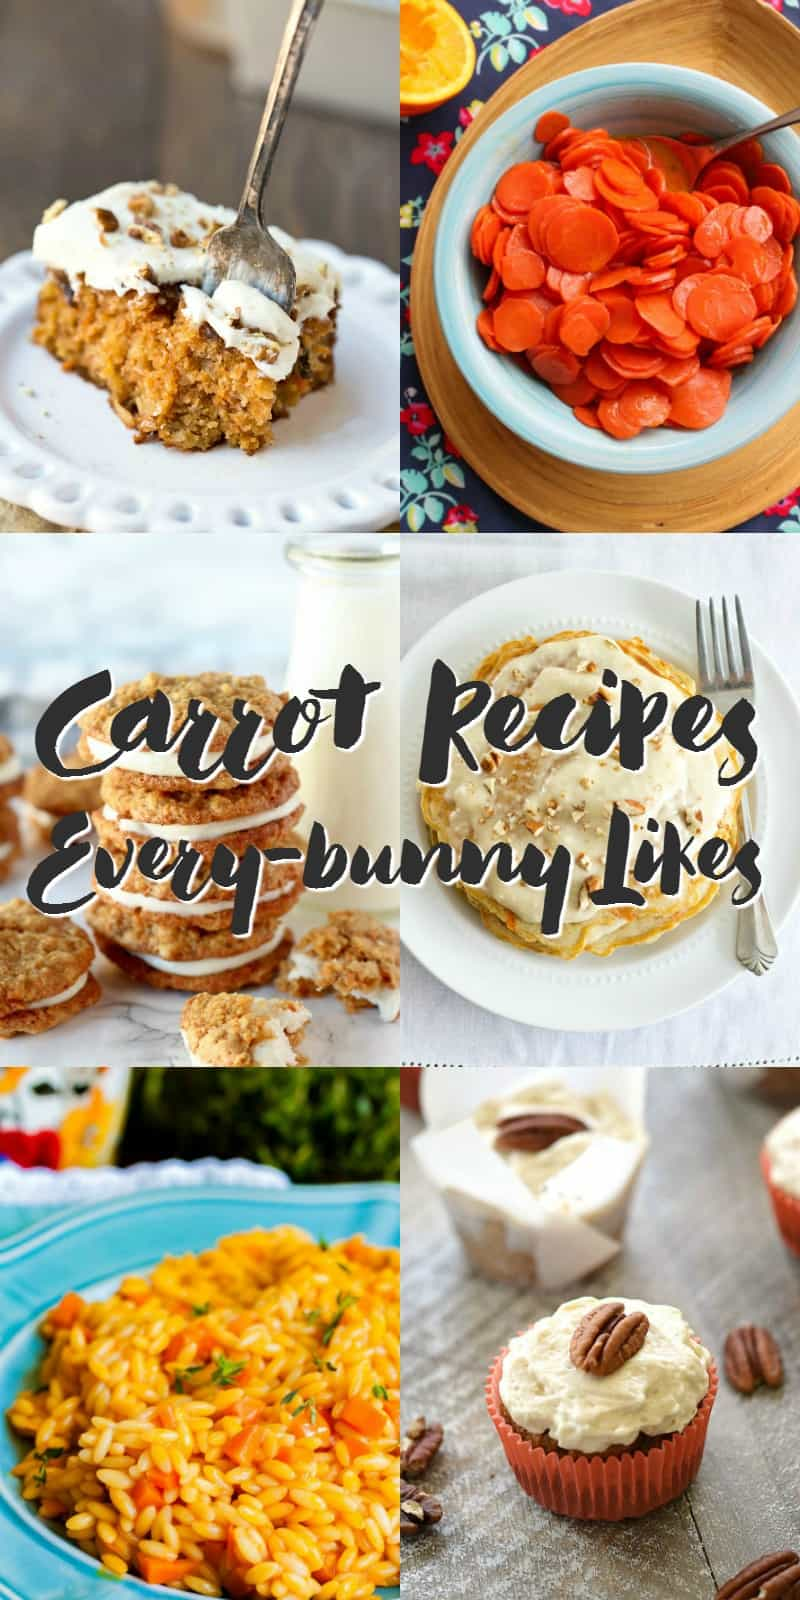 Check out these Carrots Recipes that Every-bunny Likes | cookingwithcurls.com